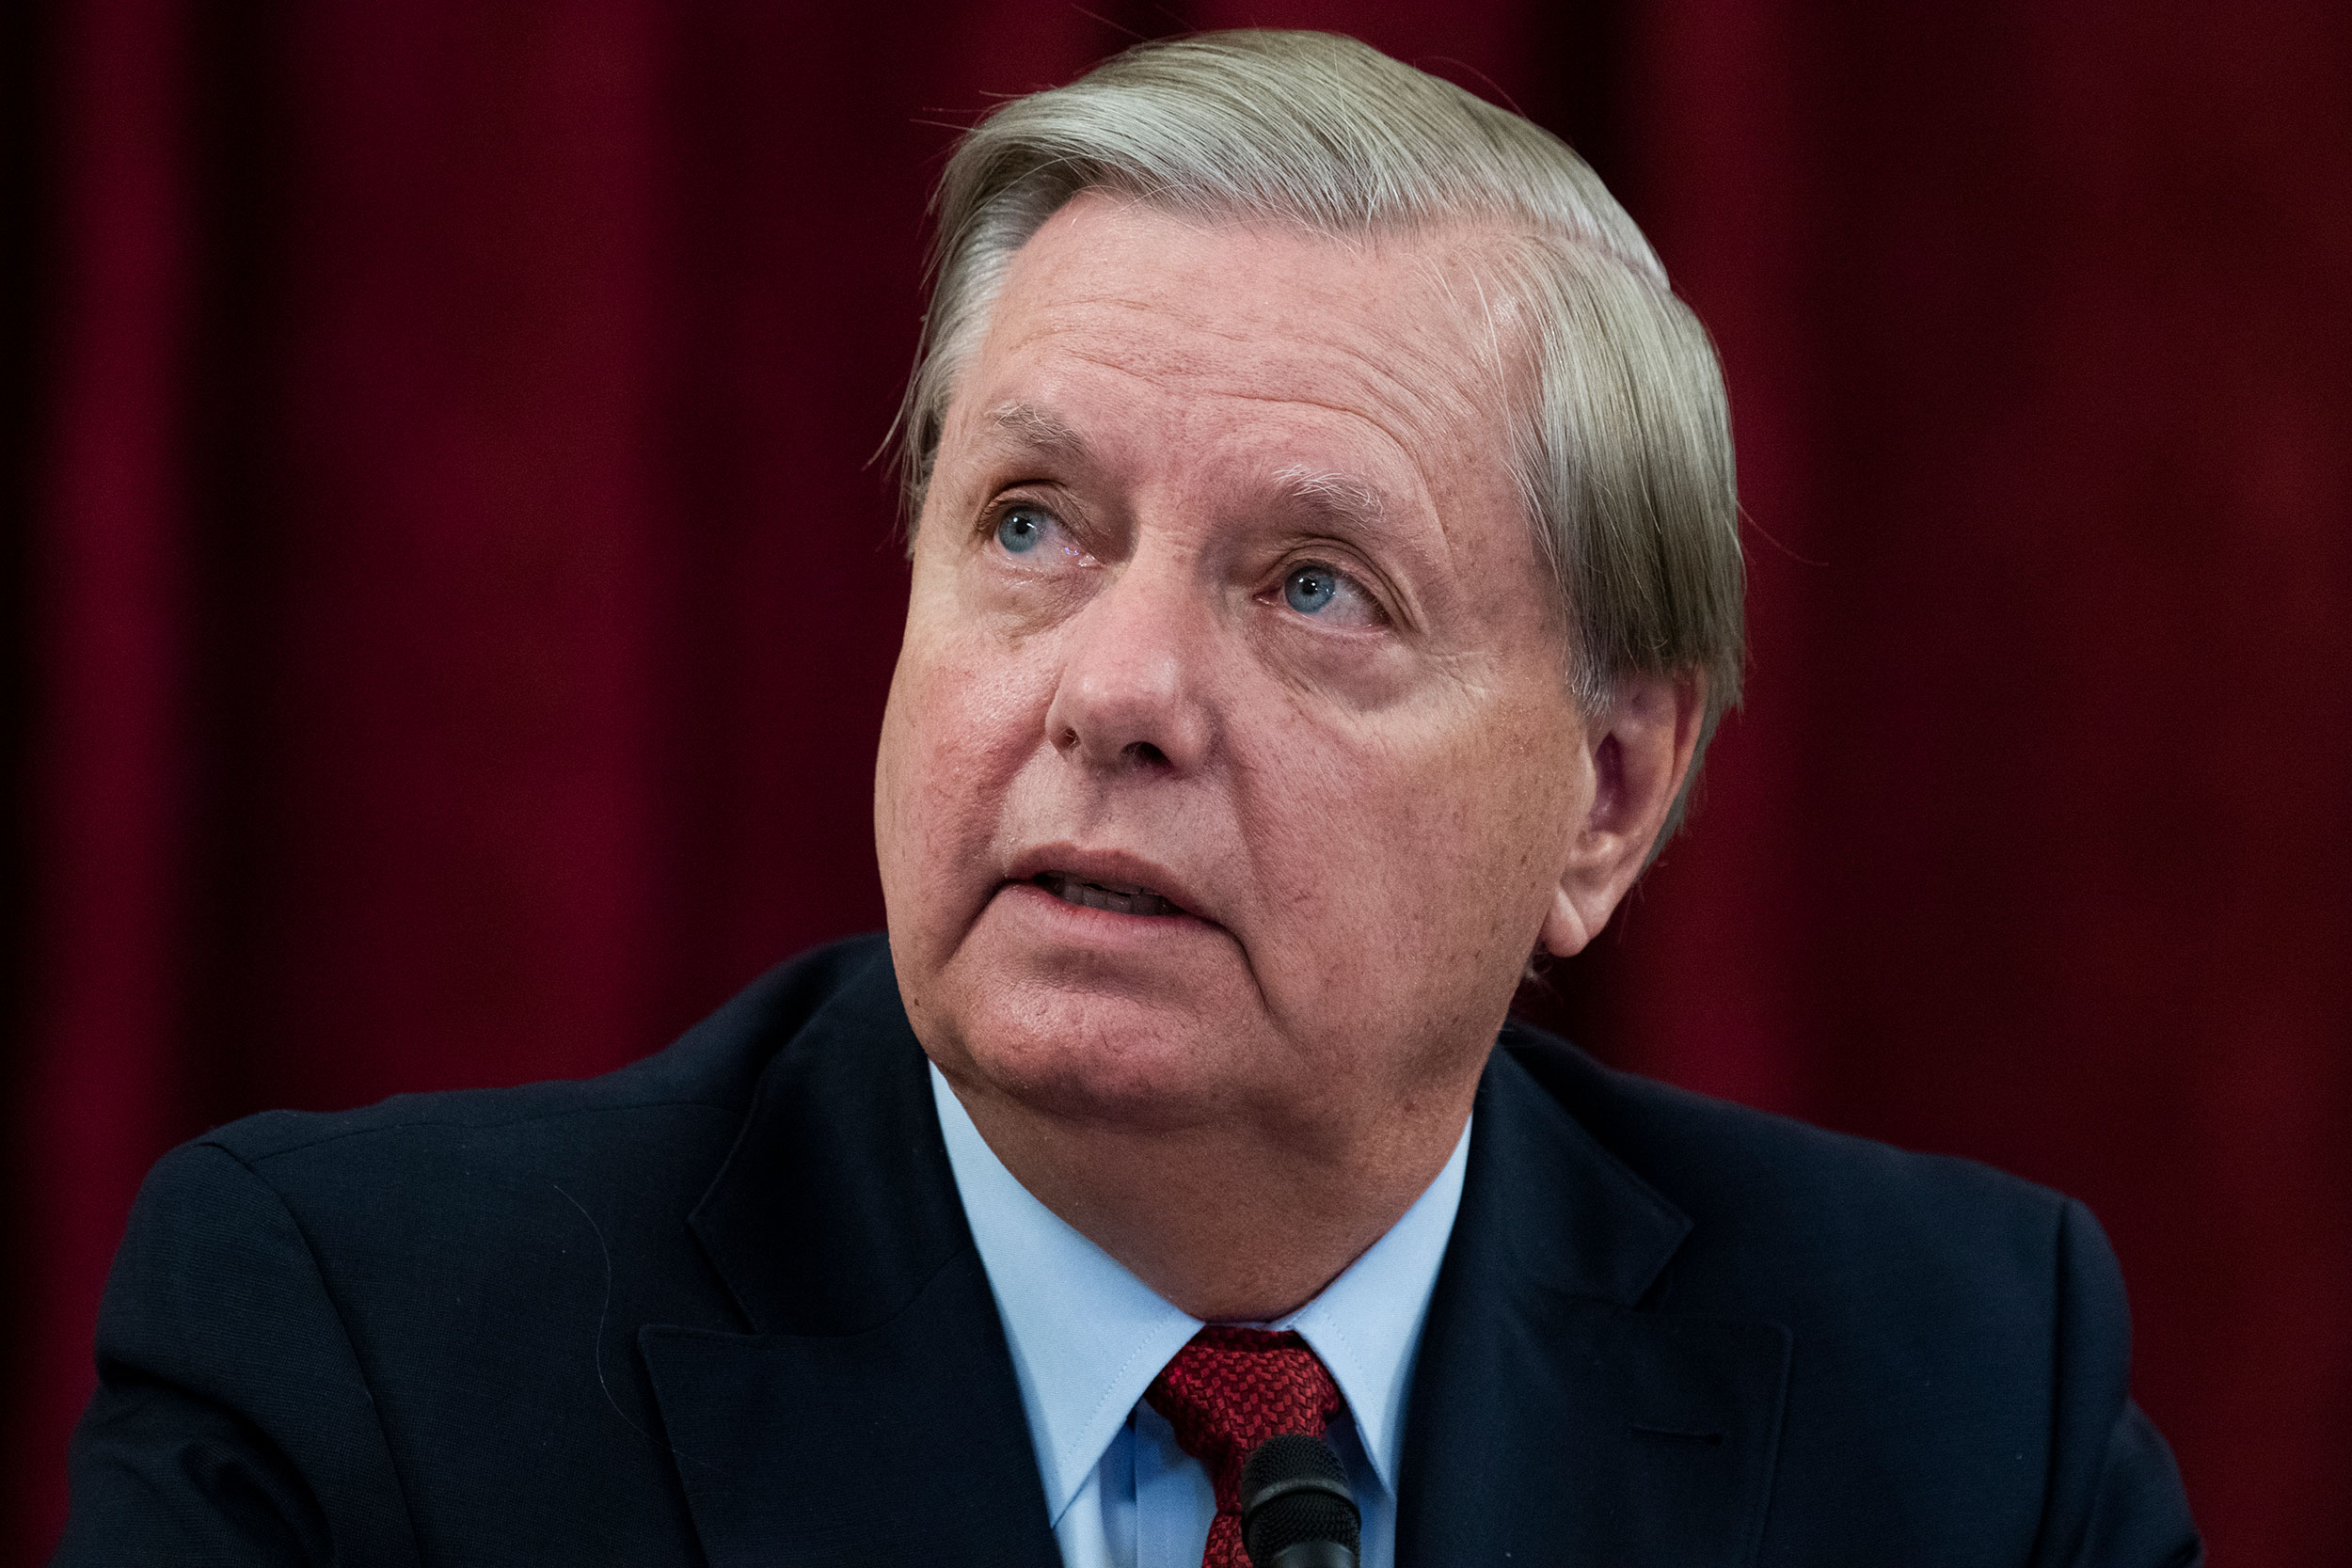 Graham on Mueller testifying: 'He has a lot to account for'